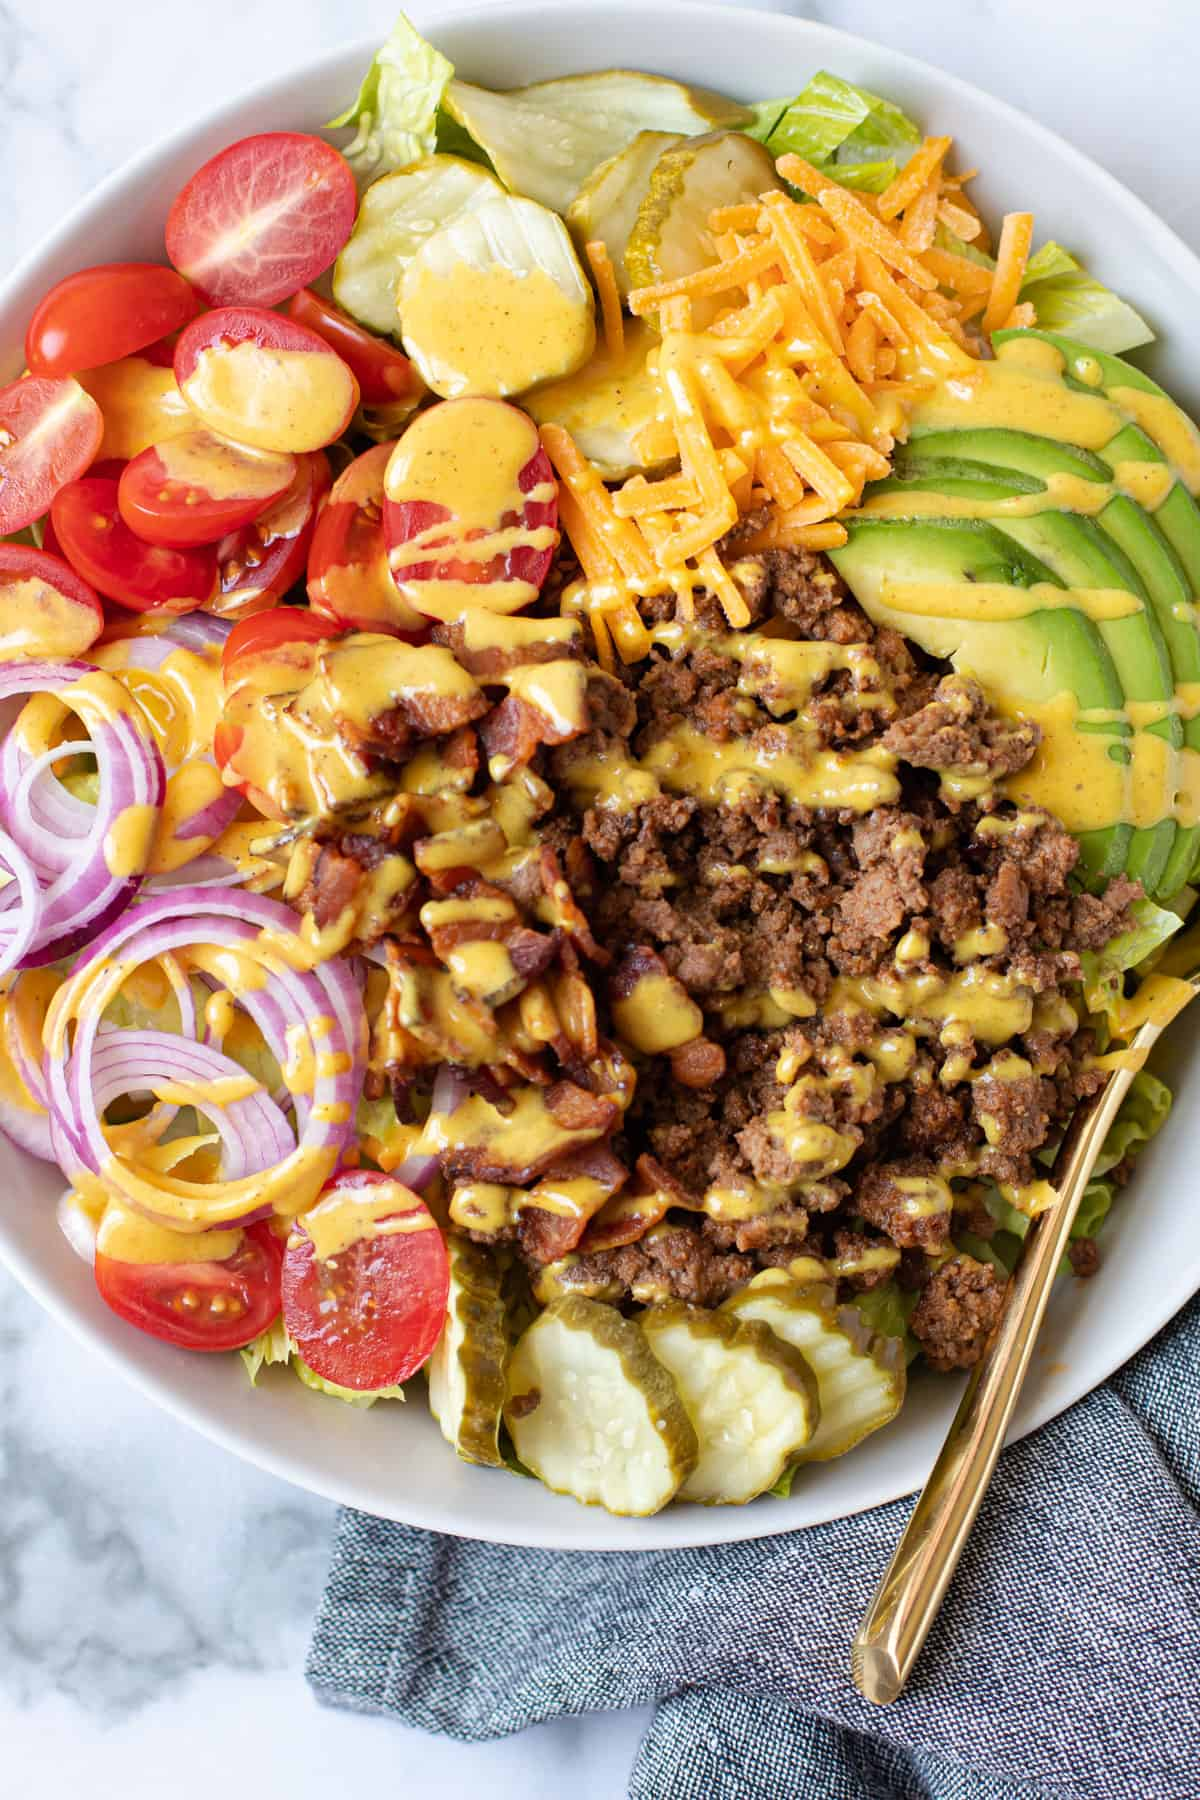 Cheeseburger salad in a bowl with mustard dressing.